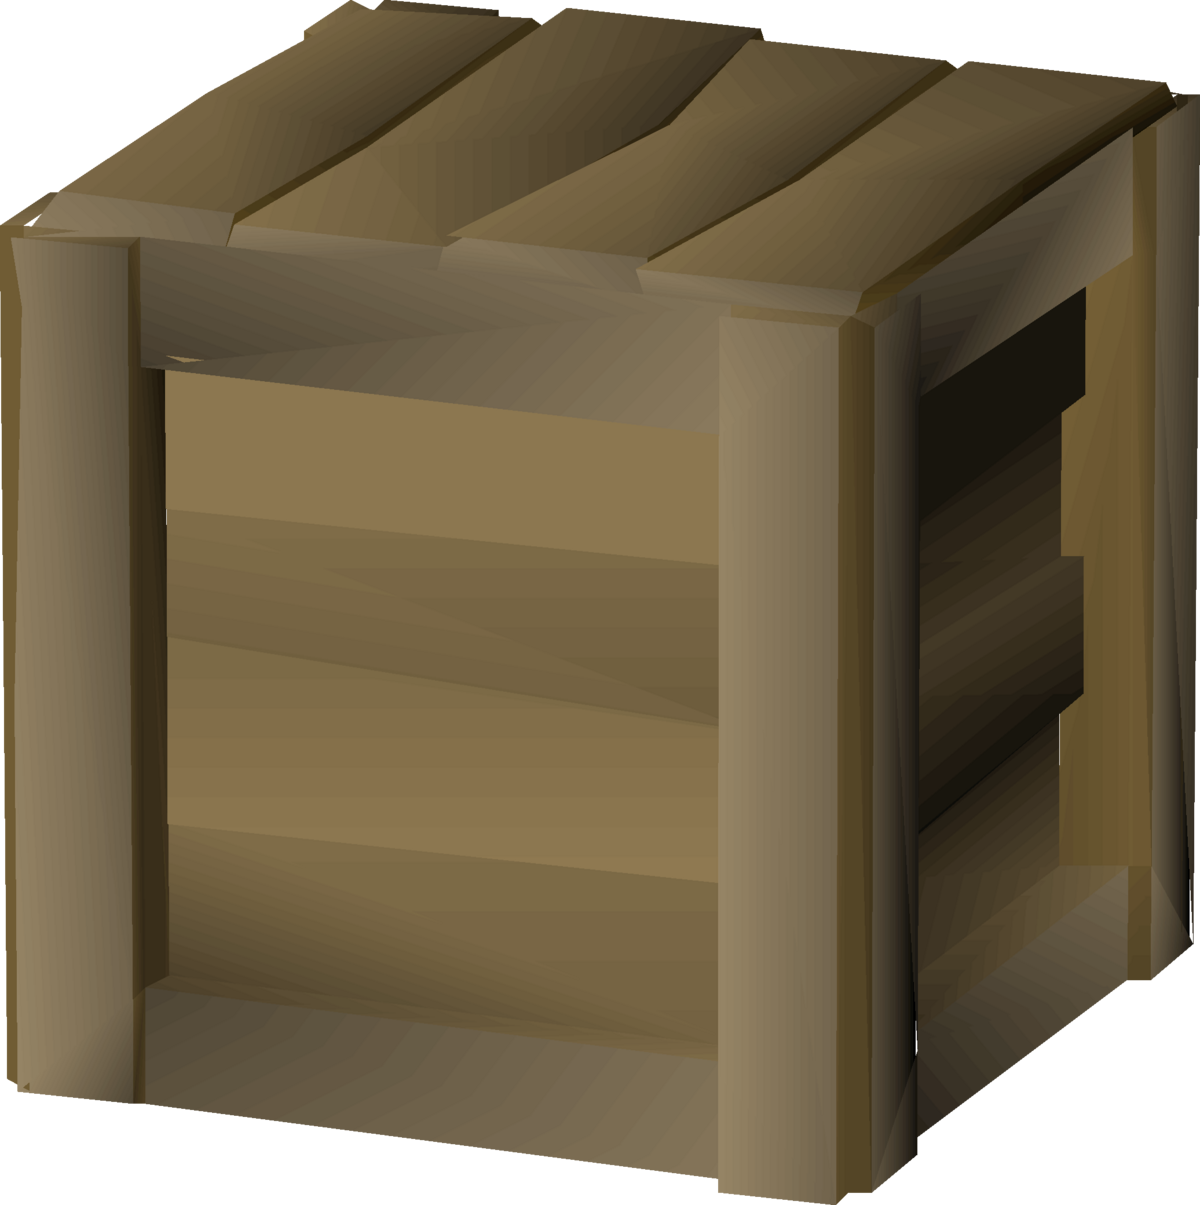 Wooden crate - OSRS Wiki